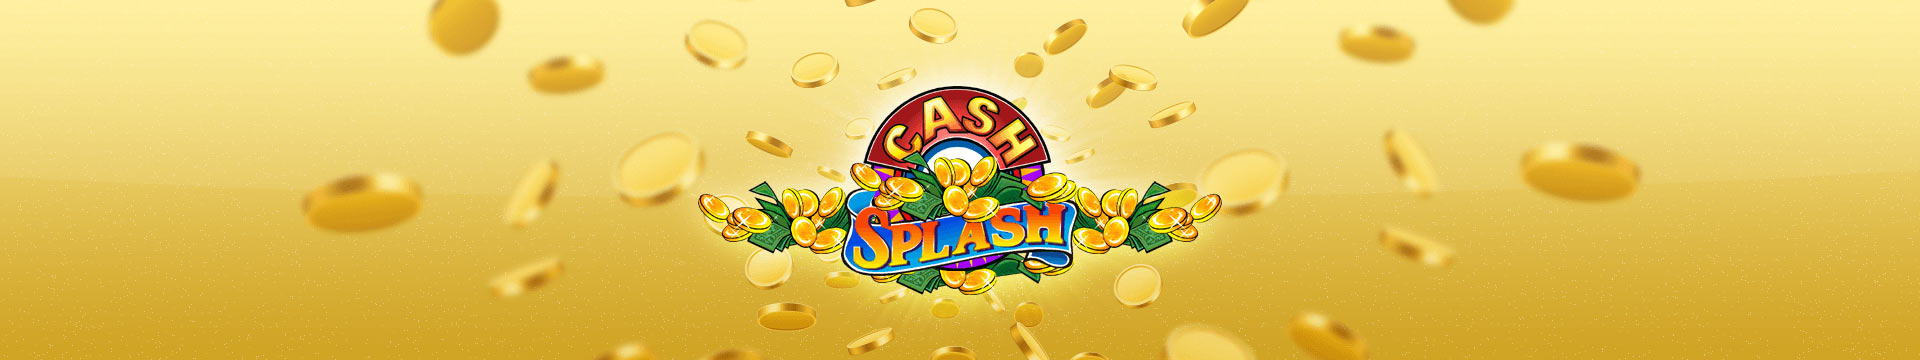 Slider Banner - Cash Splash